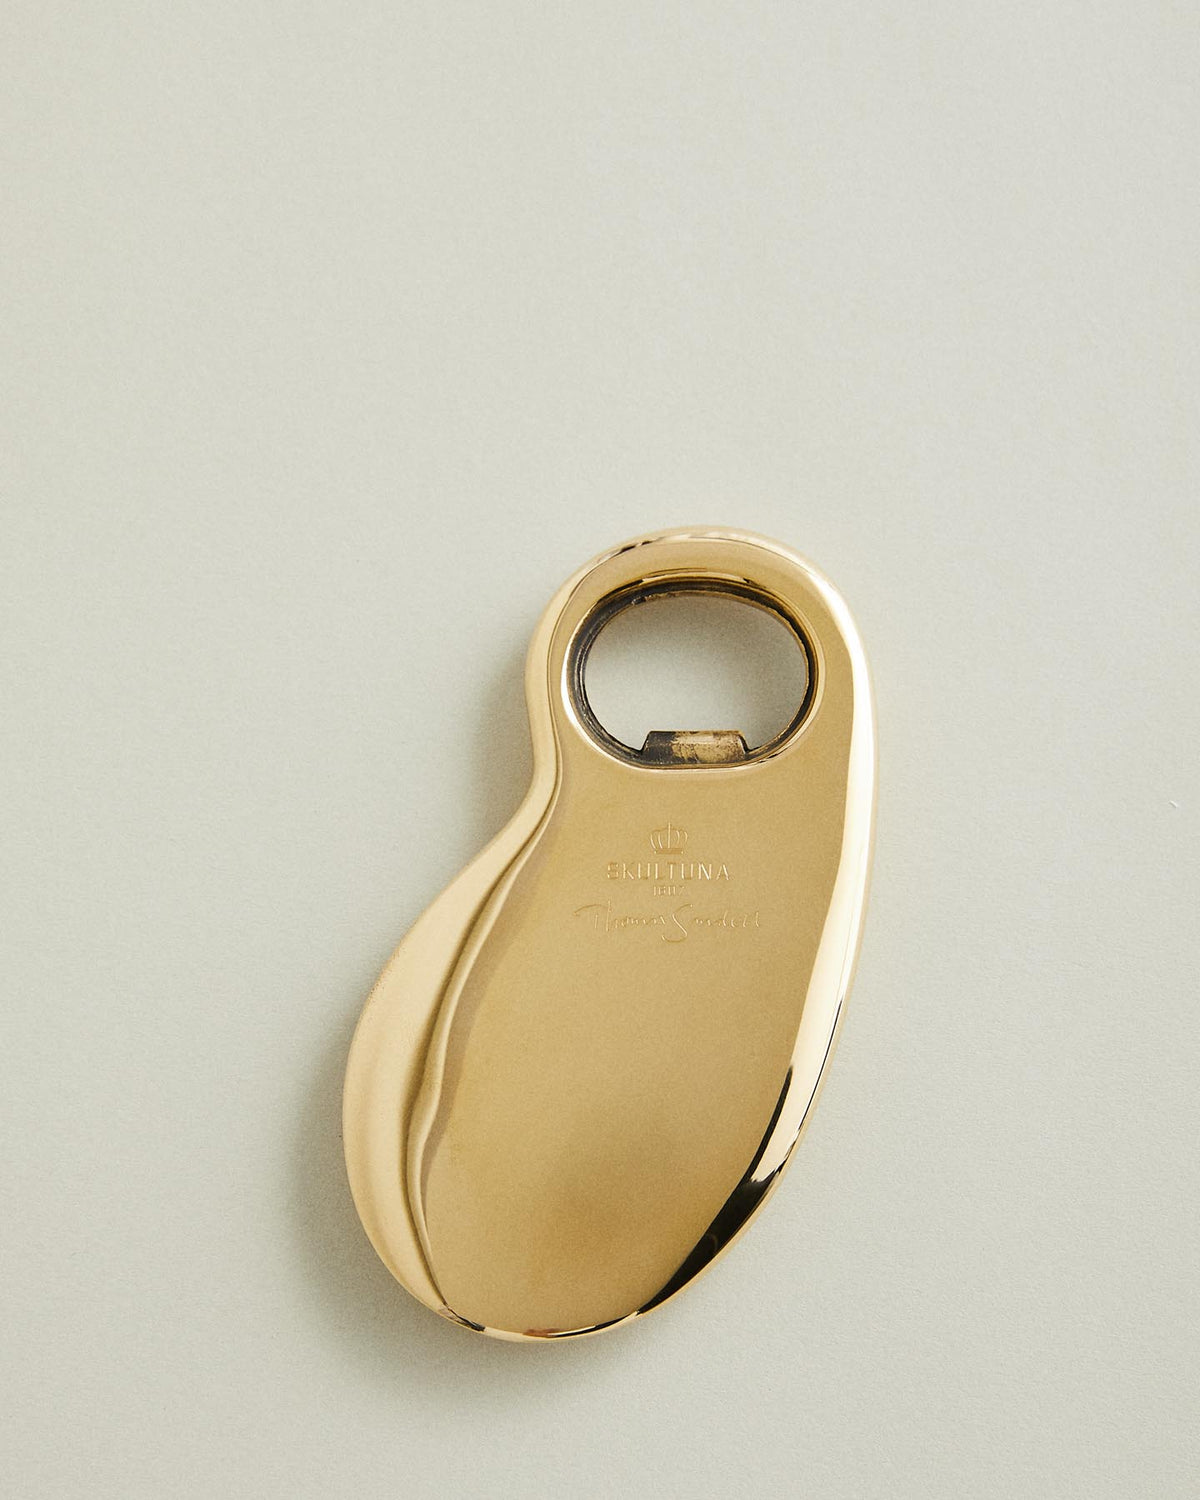 Barbara Brass Bottle Opener